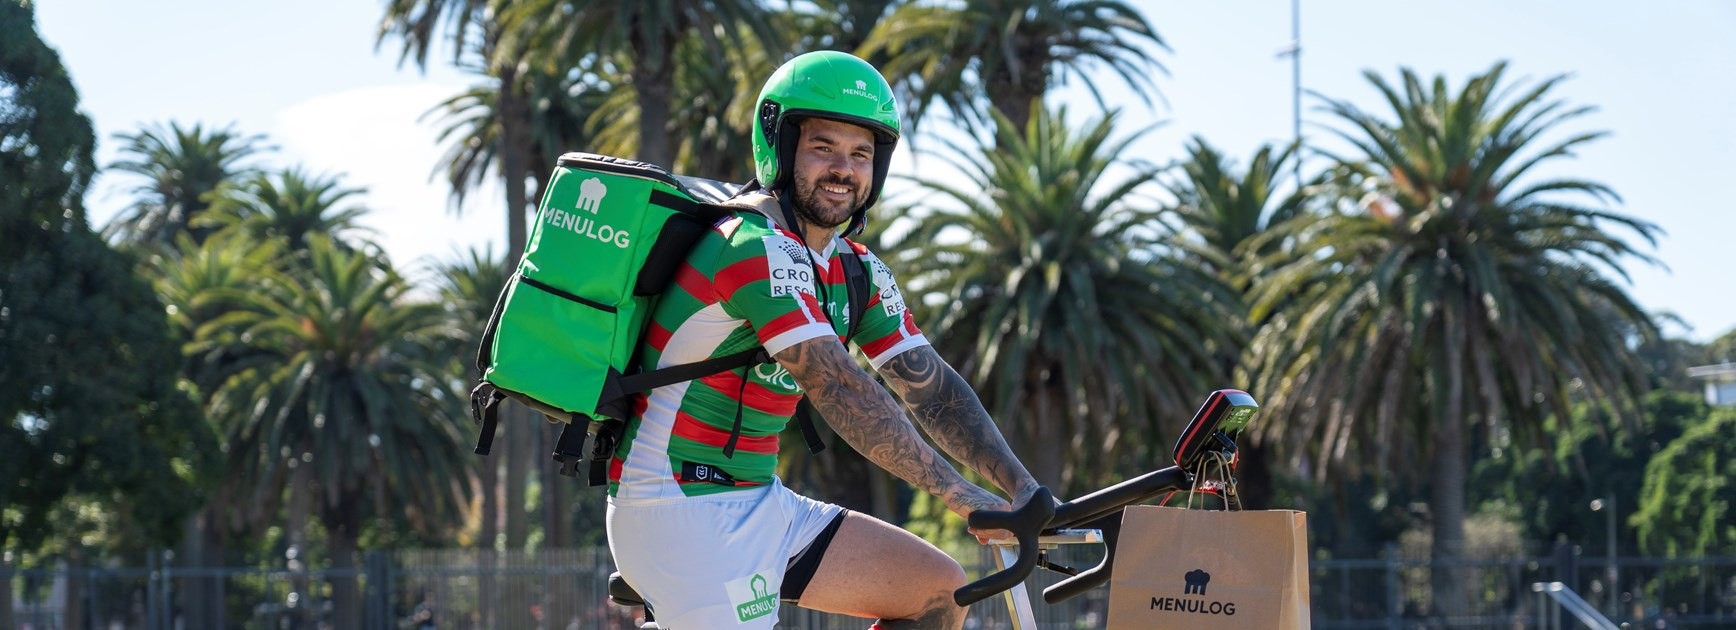 Menulog joins Rabbitohs family as Official Foody Partner